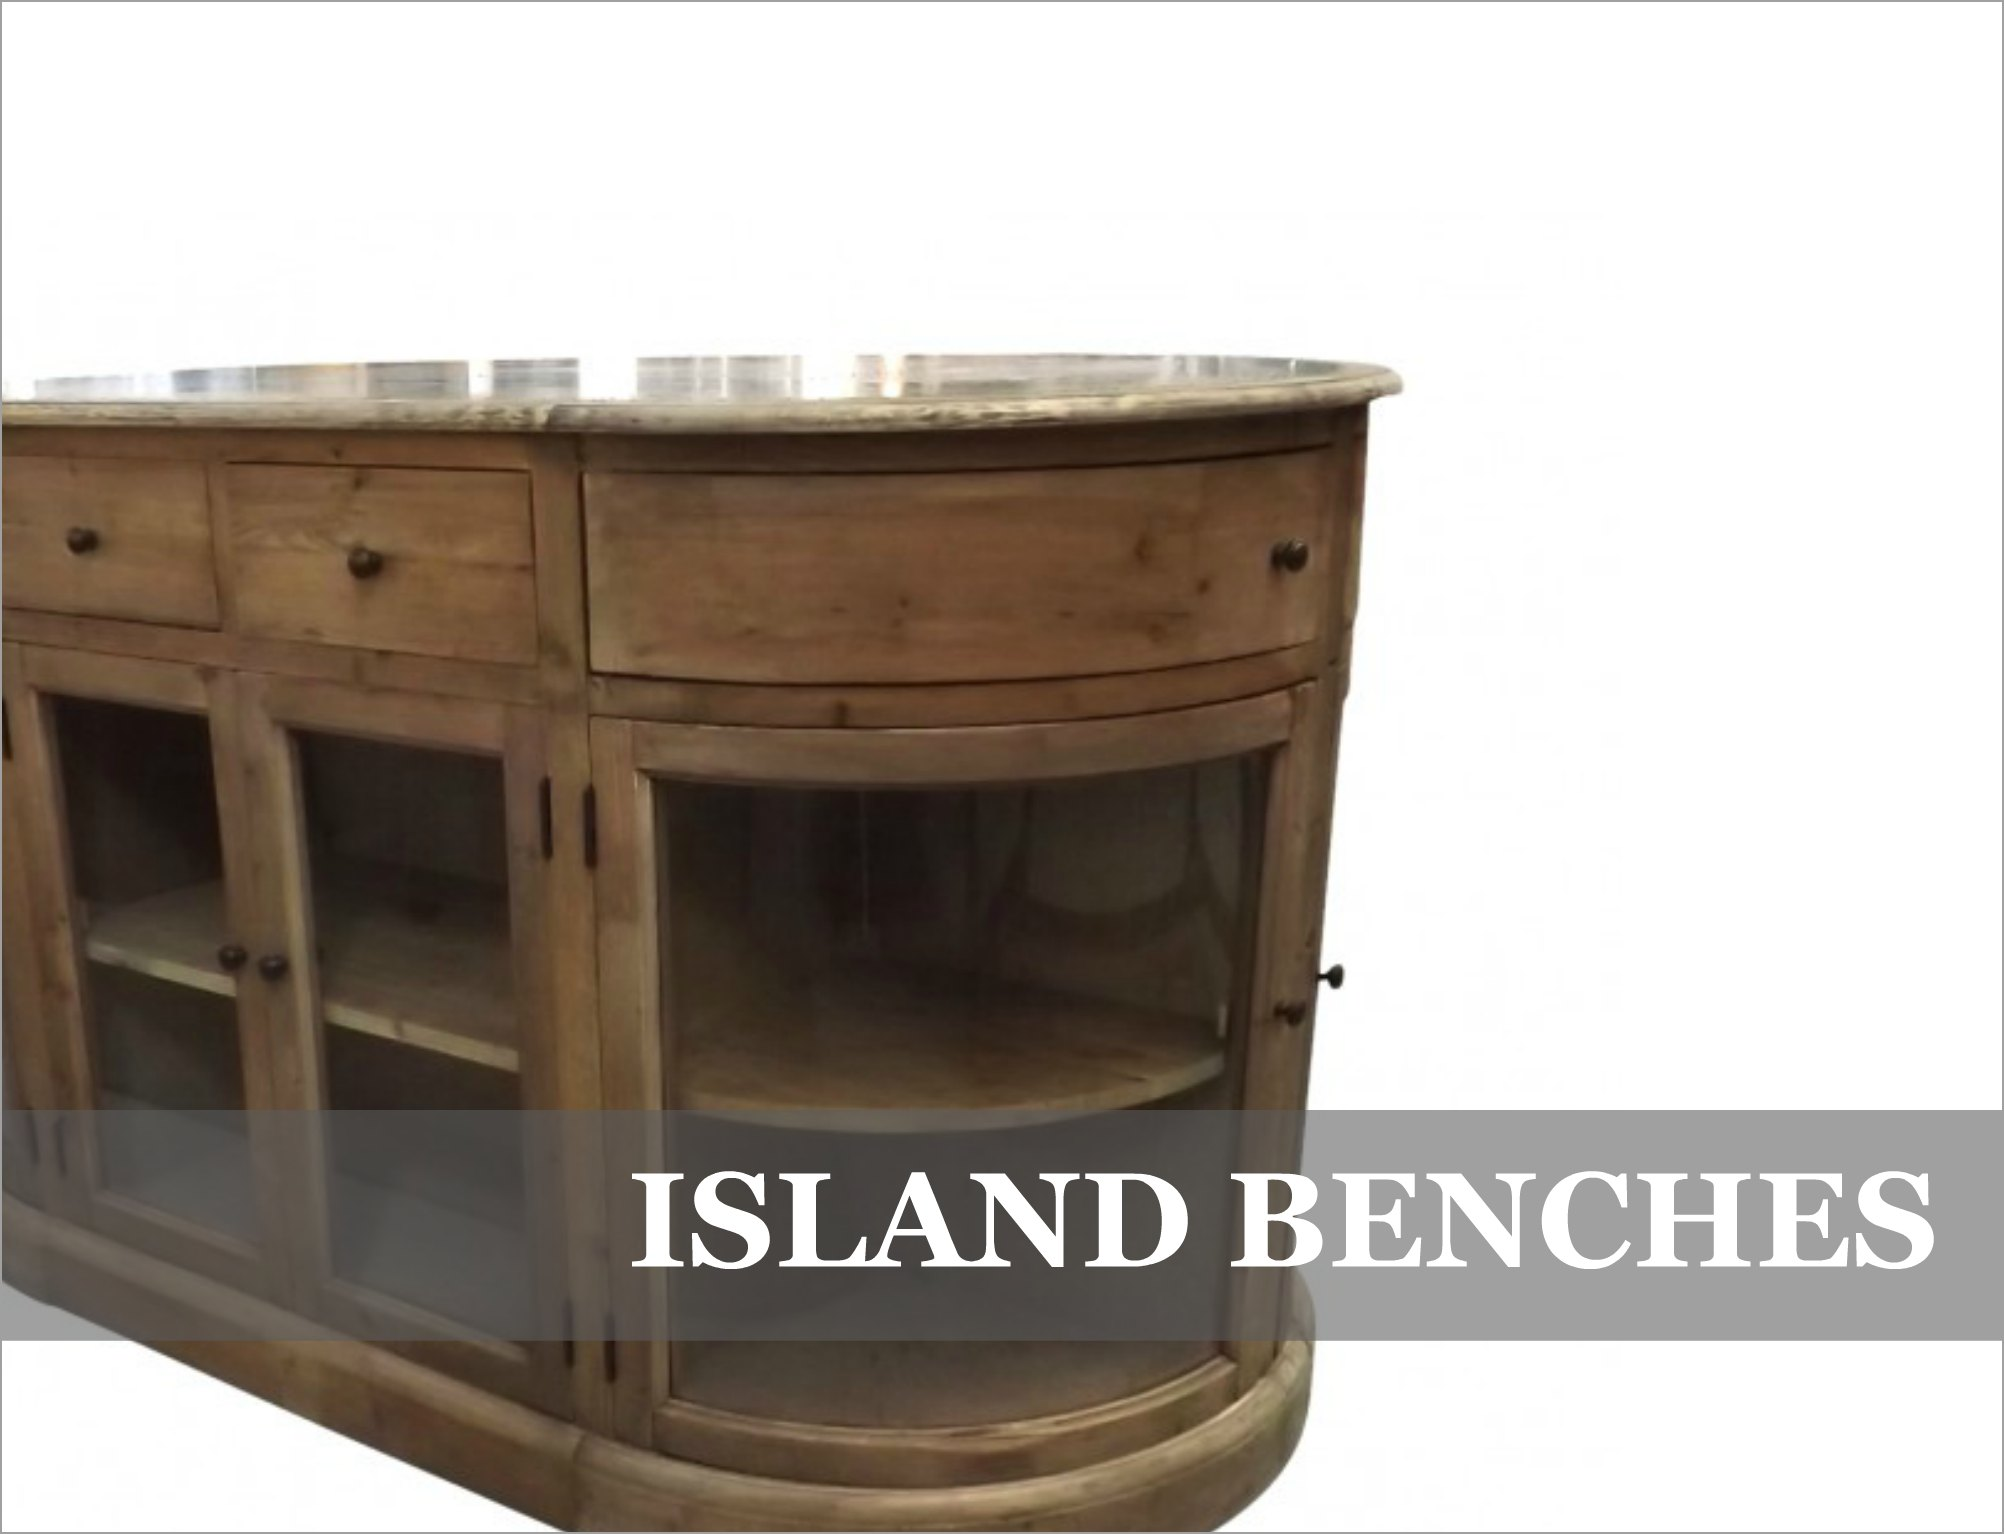 French Provincial & Industrial Kitchen Storage Island Benches